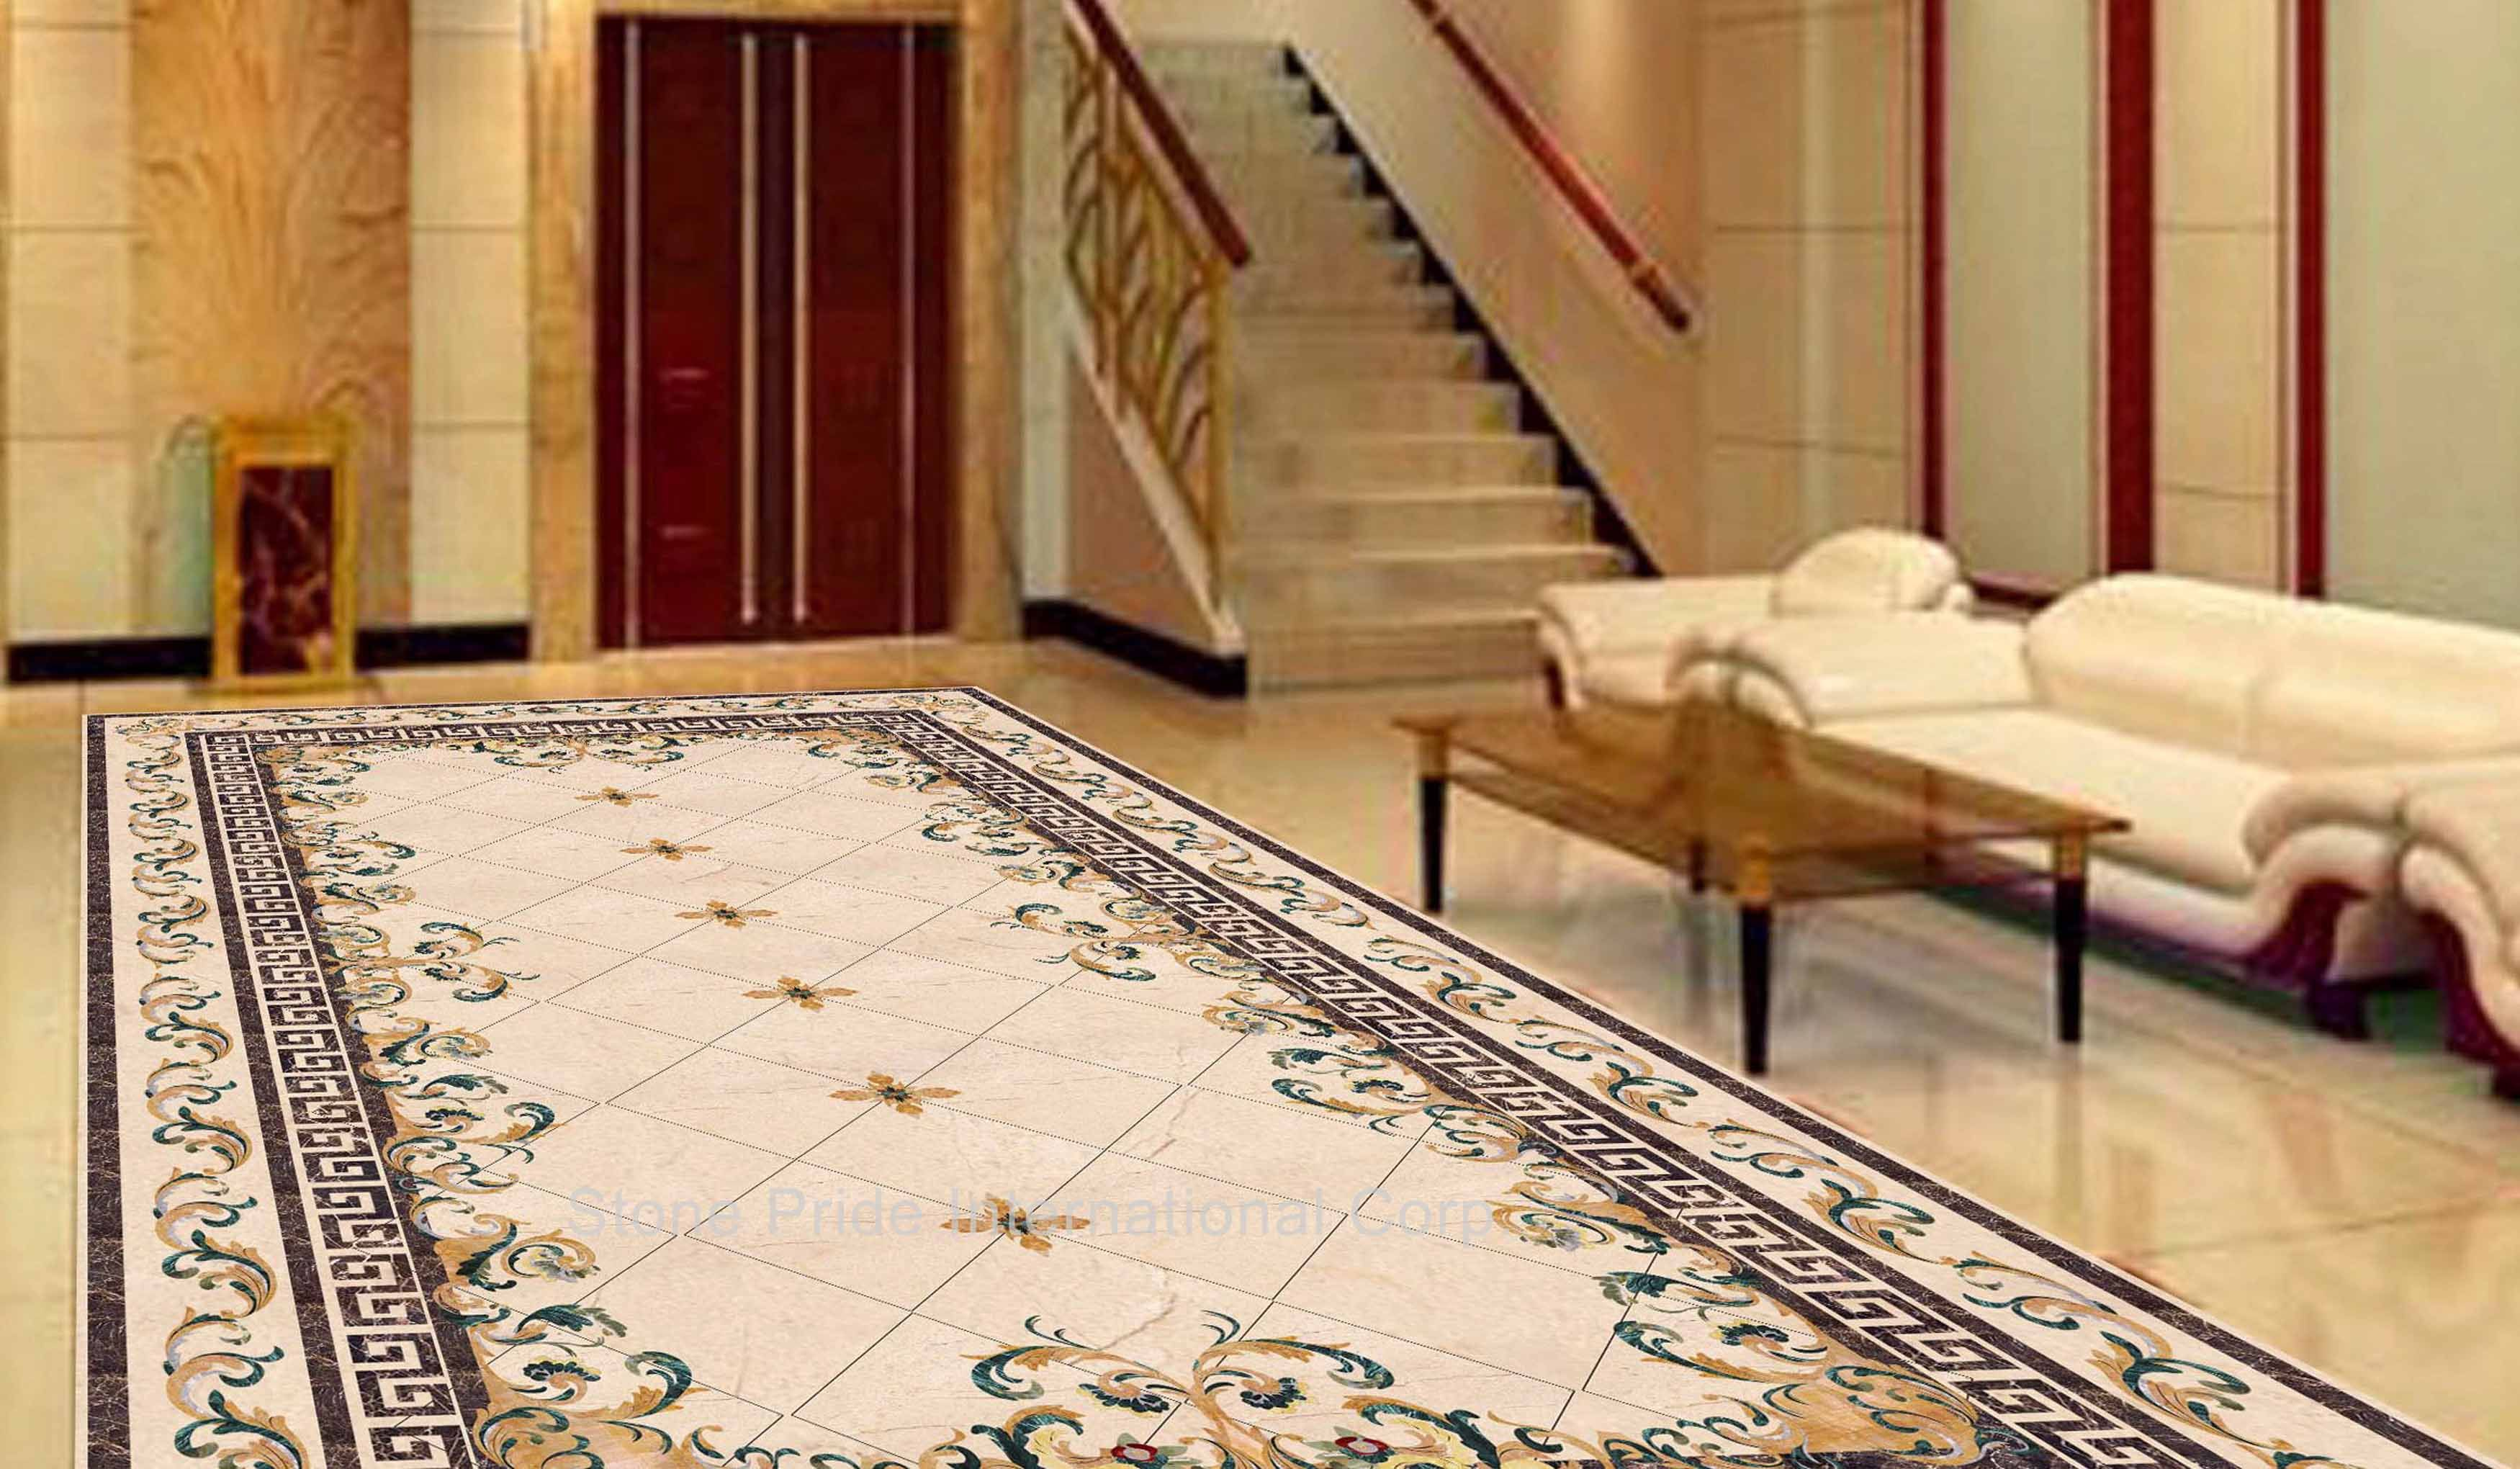 Floor design floor design floor design ideas floor for White marble floor designs